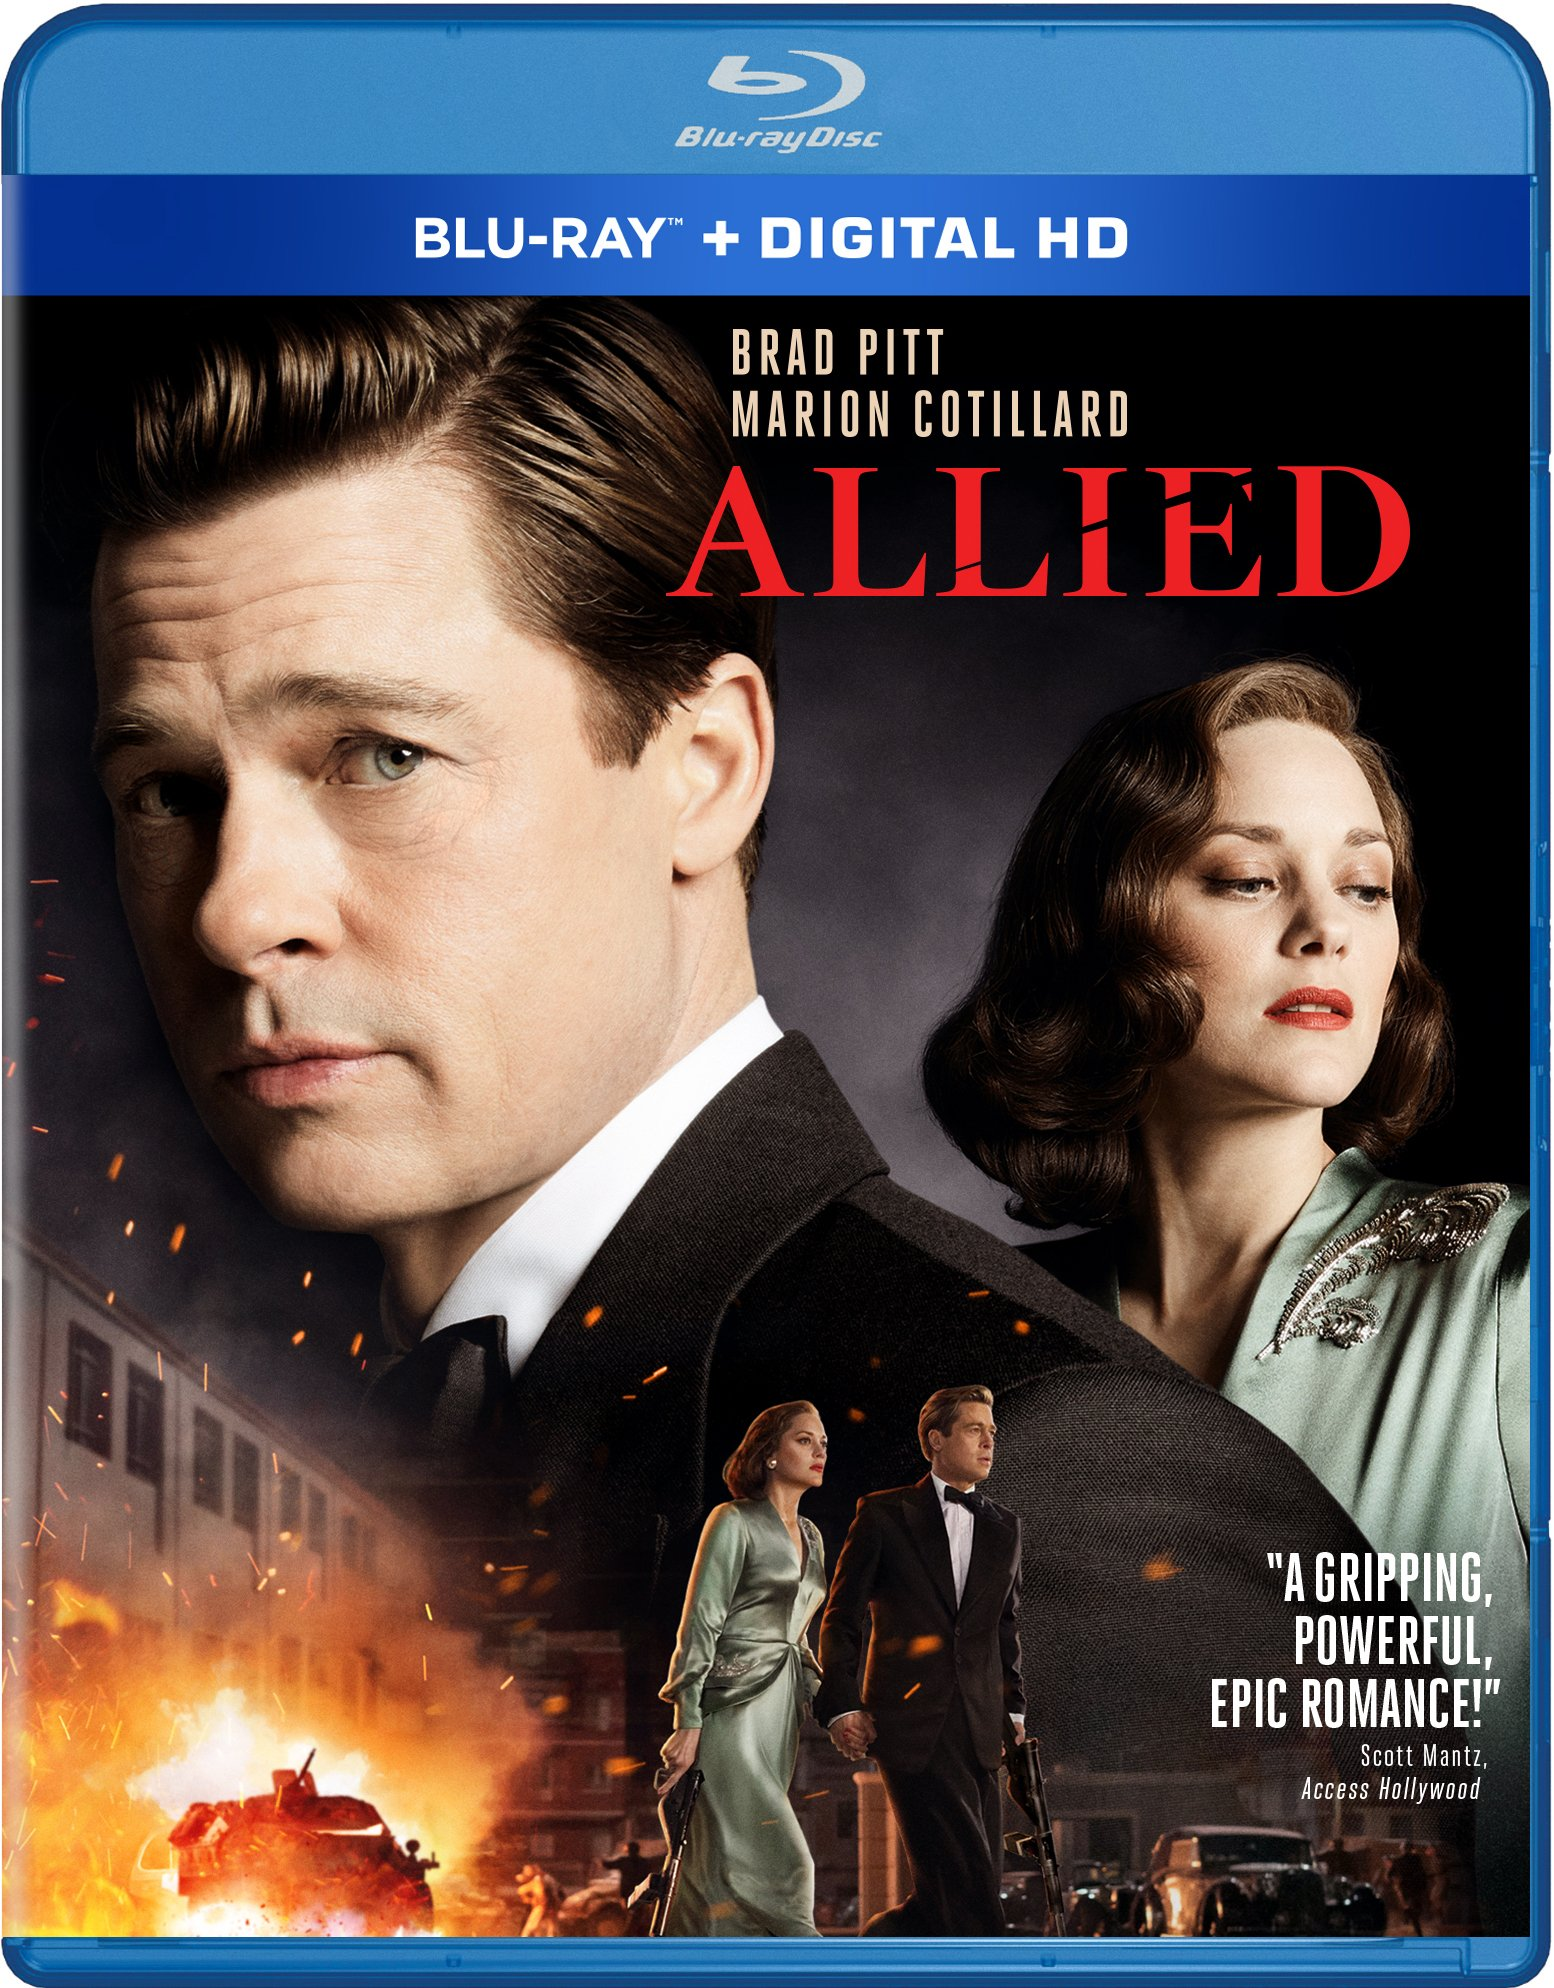 Blu-ray : Allied (AC-3, , Dubbed, Digital Theater System, Digital Copy)